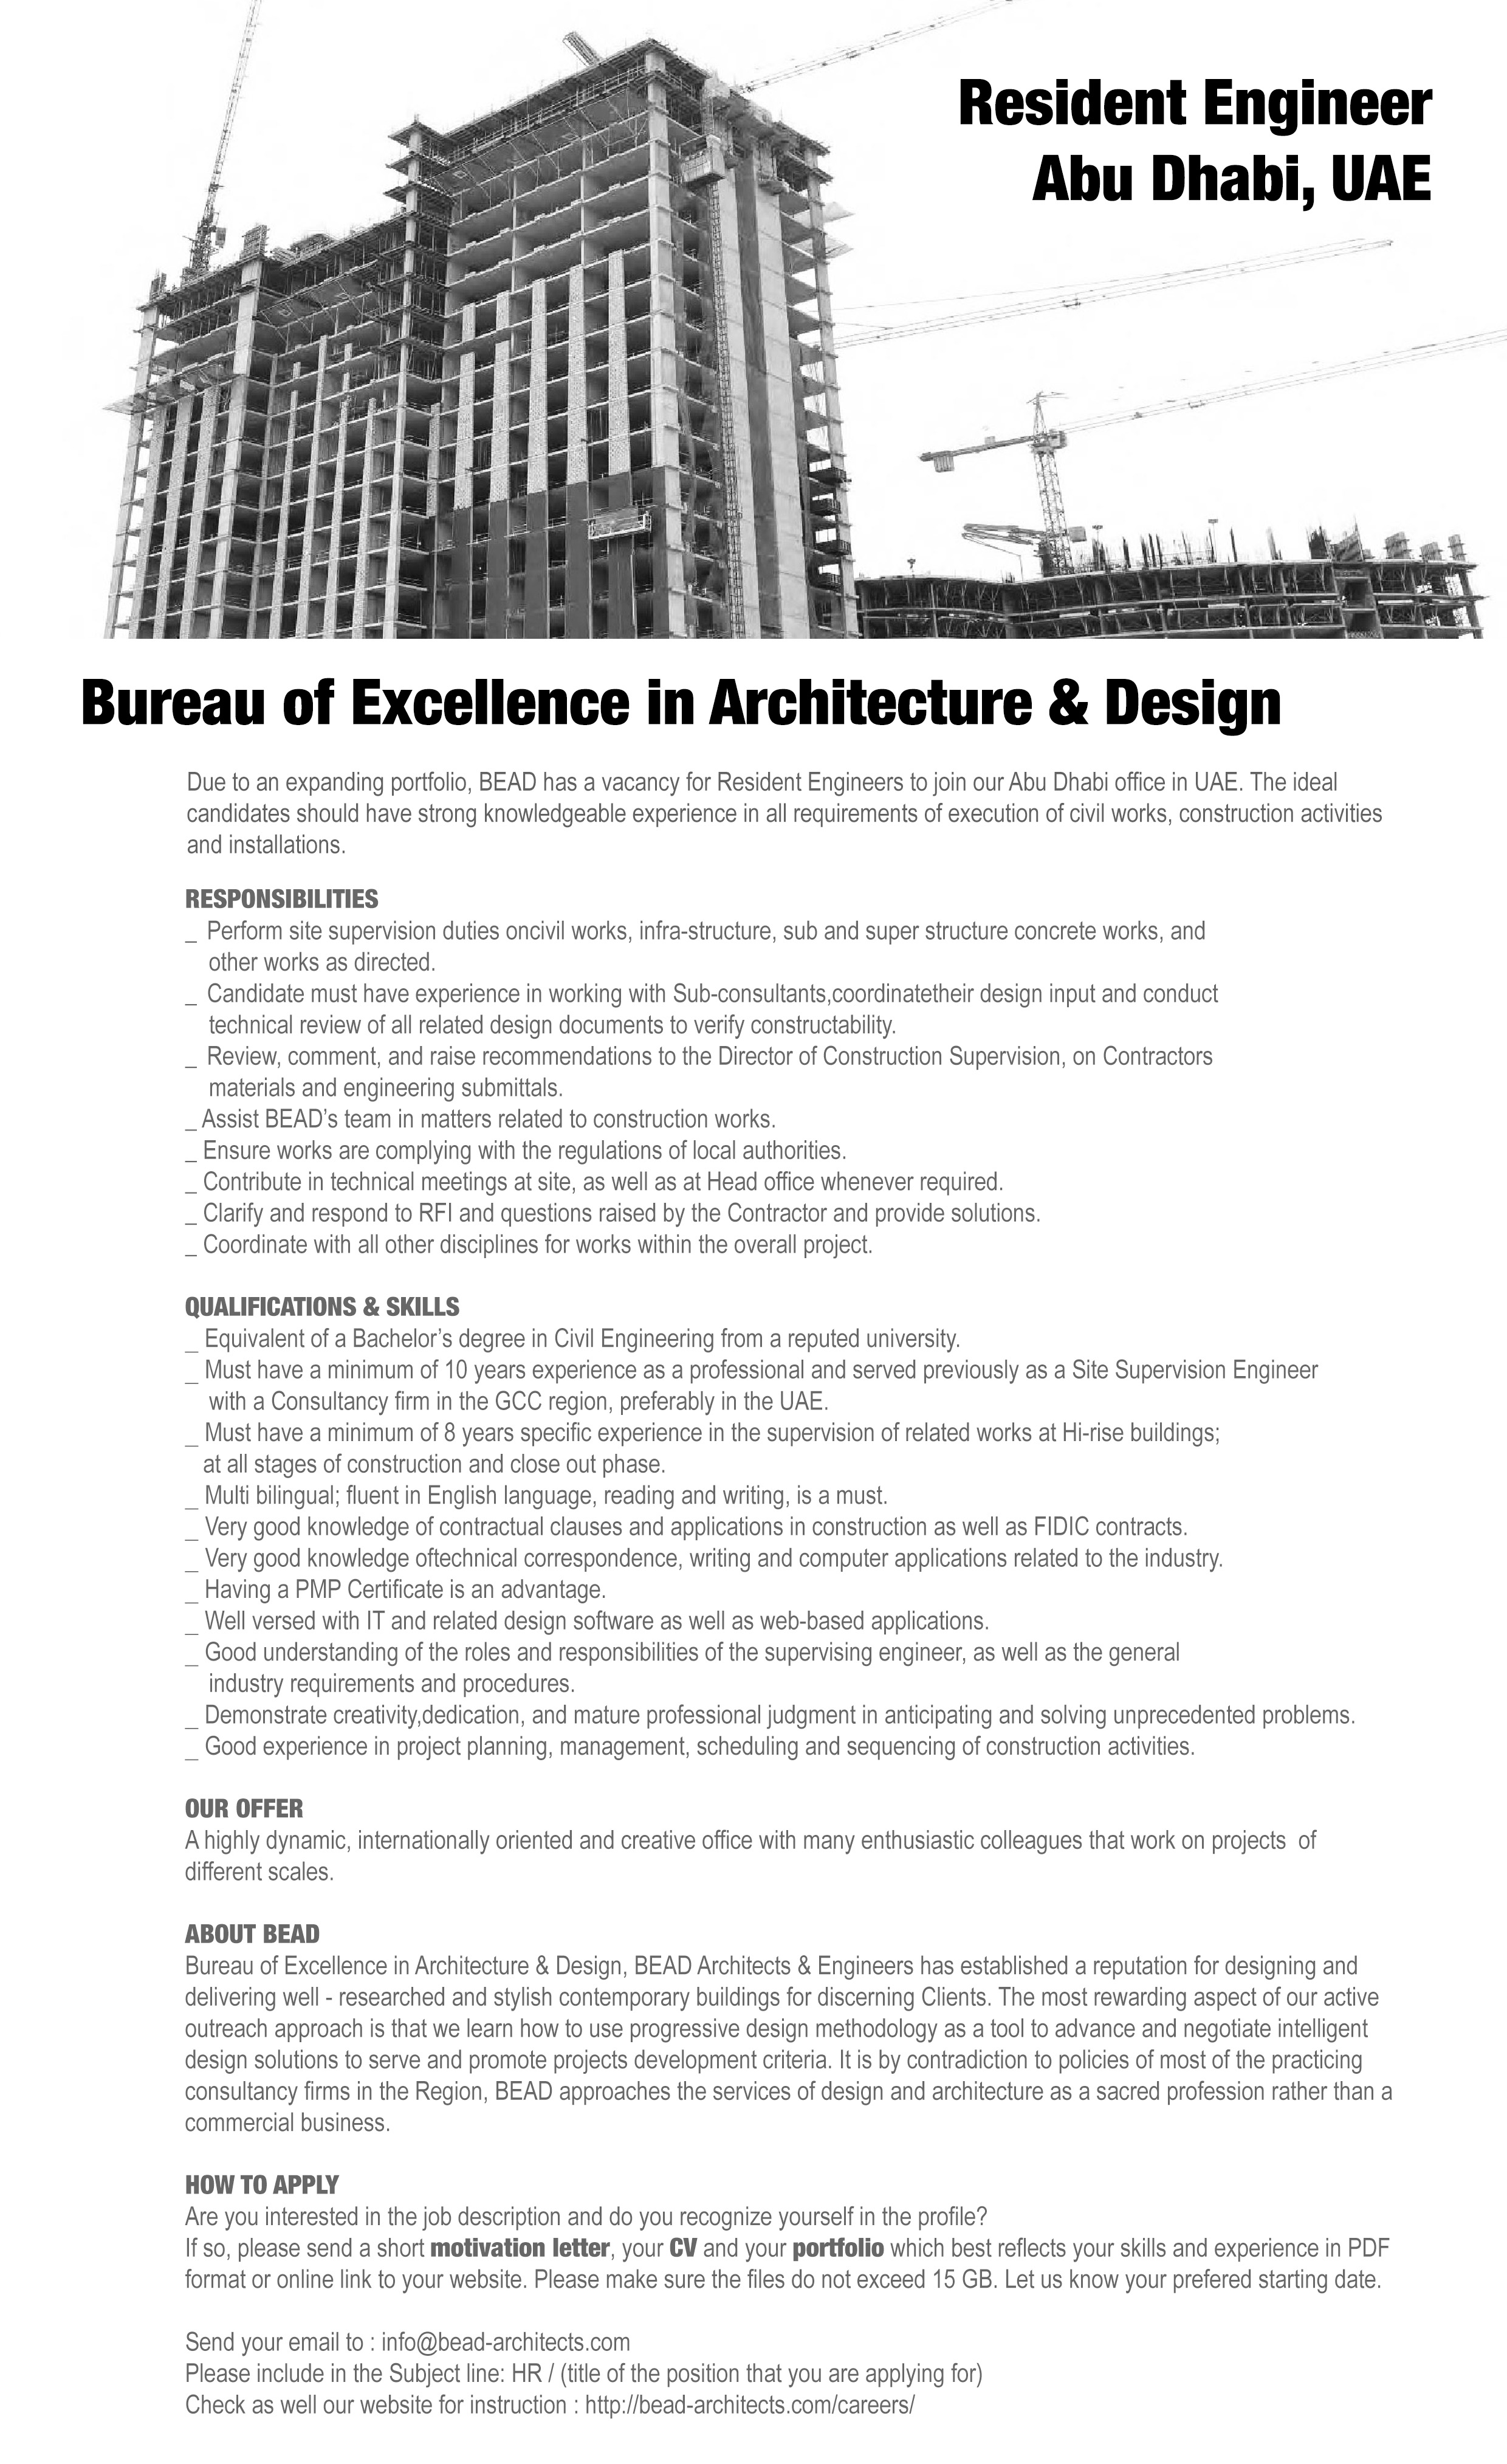 Careers — BEAD Architects & Engineers